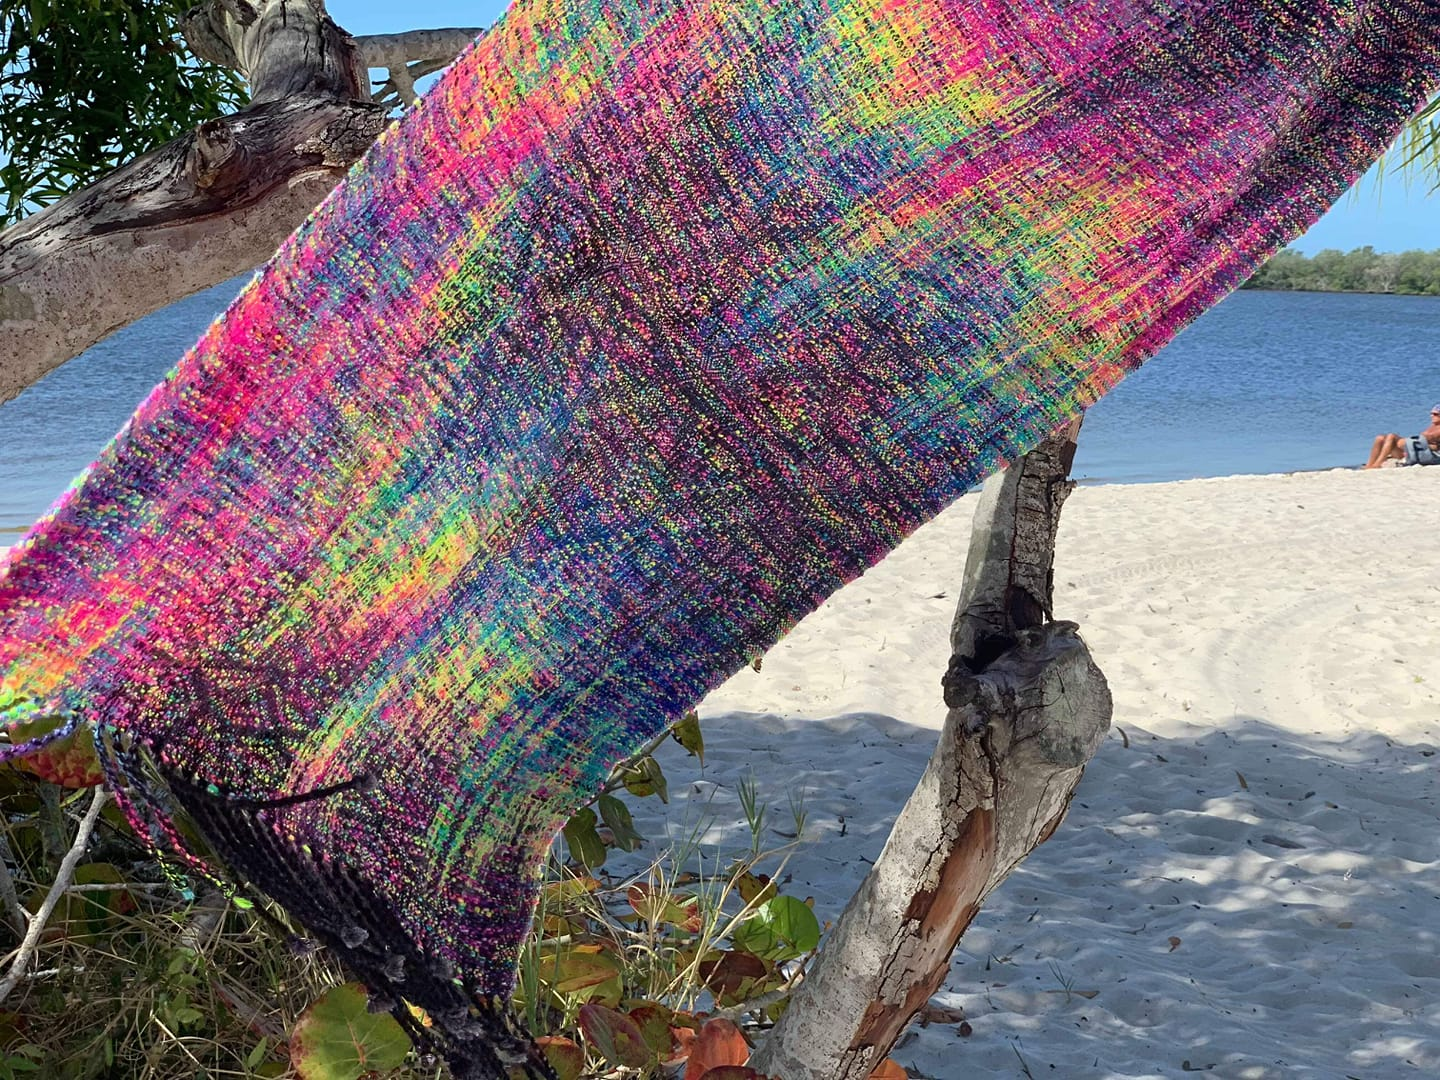 Photo ID: a beautiful rainbow painted ring sling is hanging on branch. In the background you can see the sand and the water of the ocean.